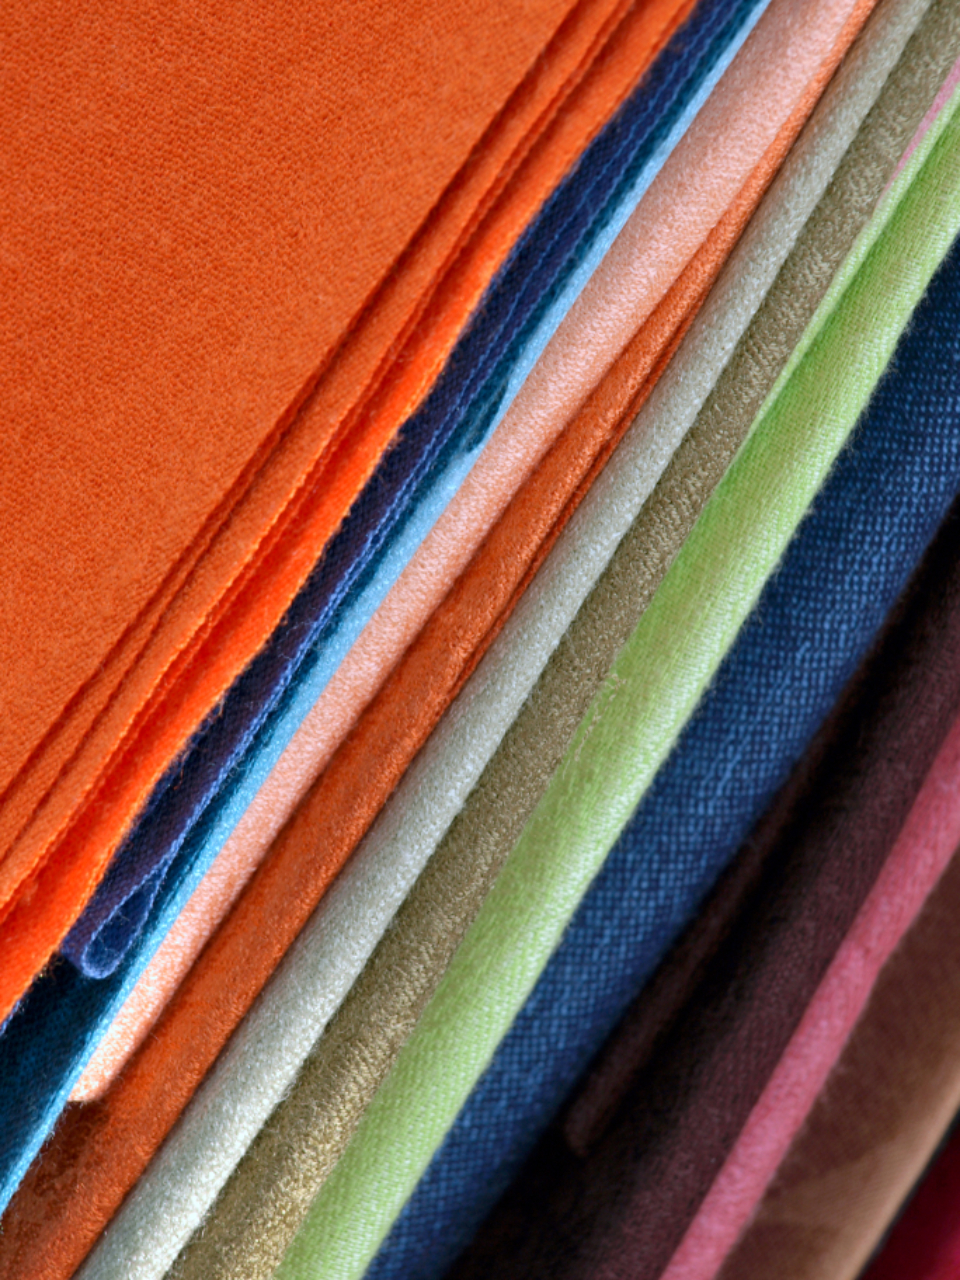 fabric swatches colorful sample cloth textile material woven uphostery sewing craft diy detail